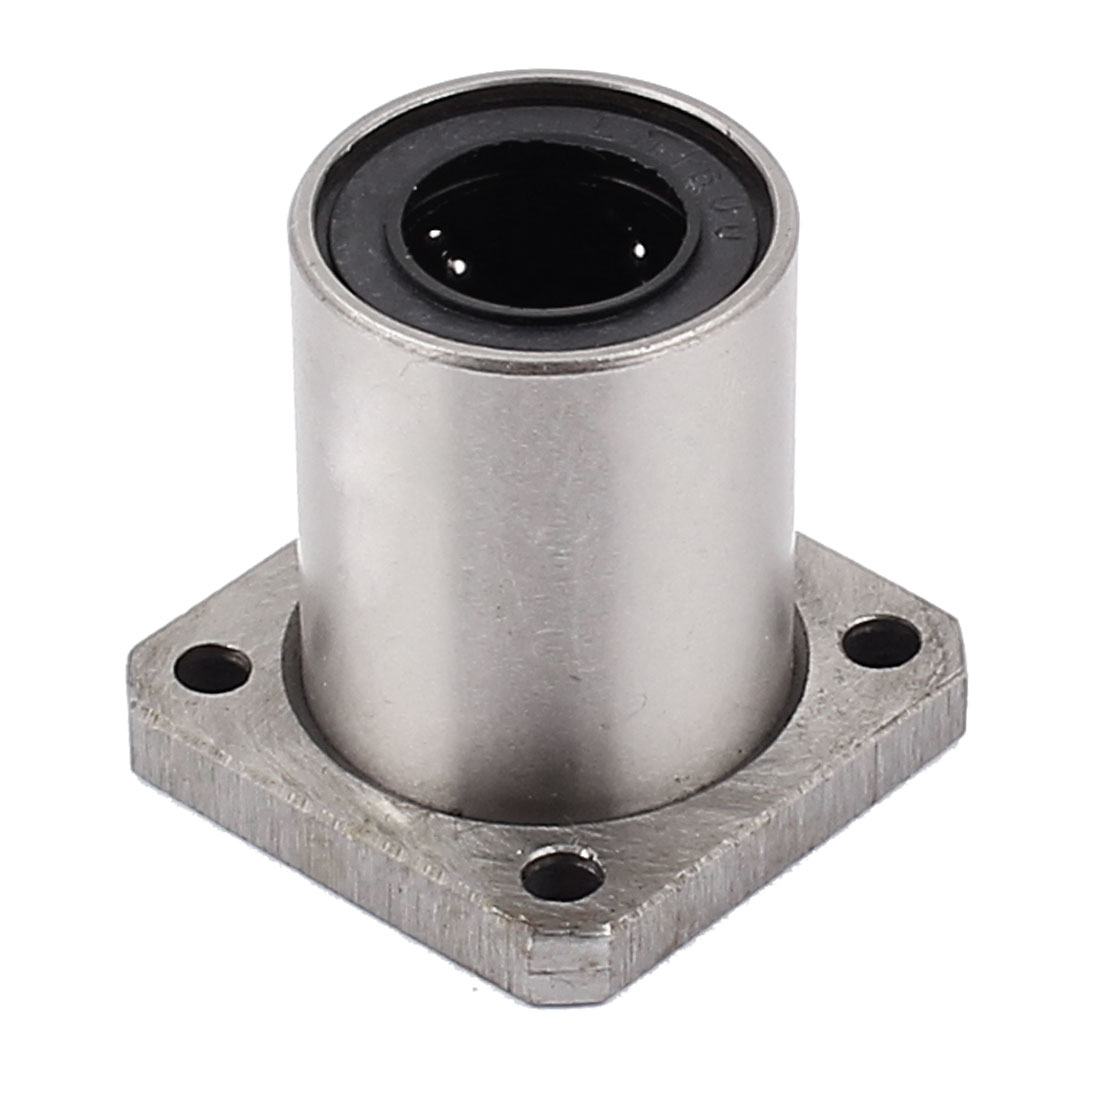 LM16UU Linear Roller Motion Bush Bushing Ball Bearing 37mm x 28mm x 16mm